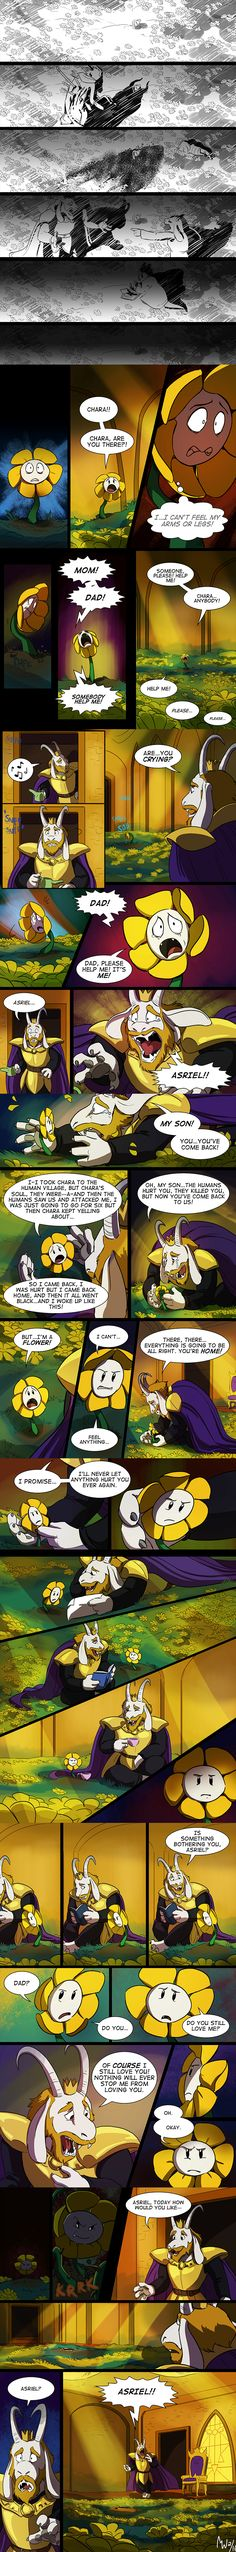 Undertale - Flowey Origins pt 1 Source: http://lynxgriffin.tumblr.com/post/139248485408/to-be-continued-i-guess-i-just-cant-stay-away